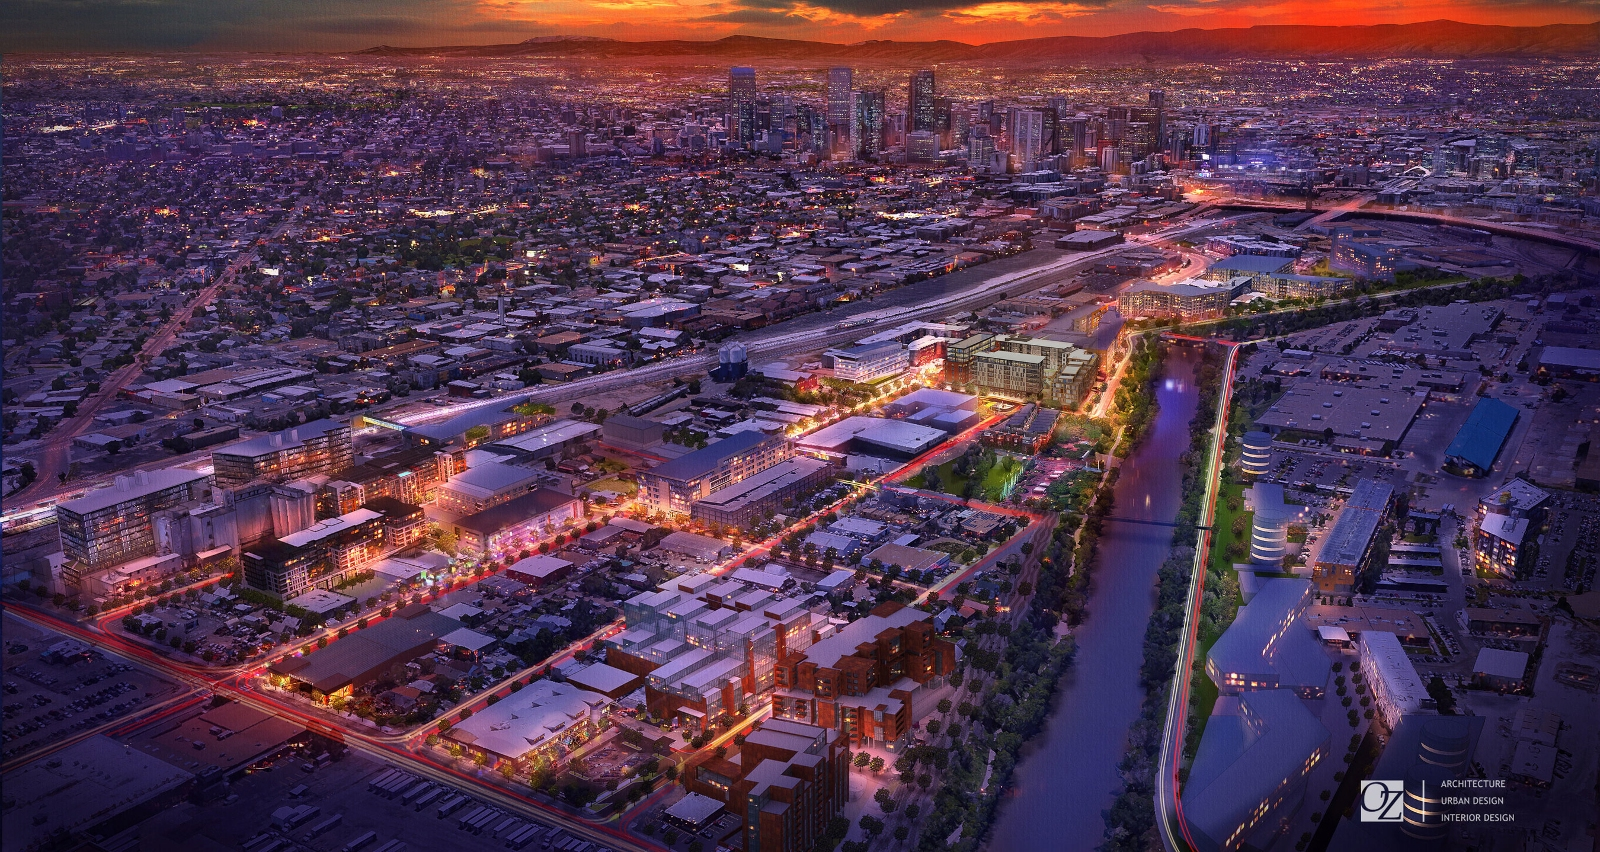 """RiNo at """"a boil,"""" not cooling off anytime soon  """"The RiNo market doesn't show signs of slowing down in 2016. Several upcoming public investments could have an outsize impact on the neighborhood.   4/19/2016 Denver Post"""